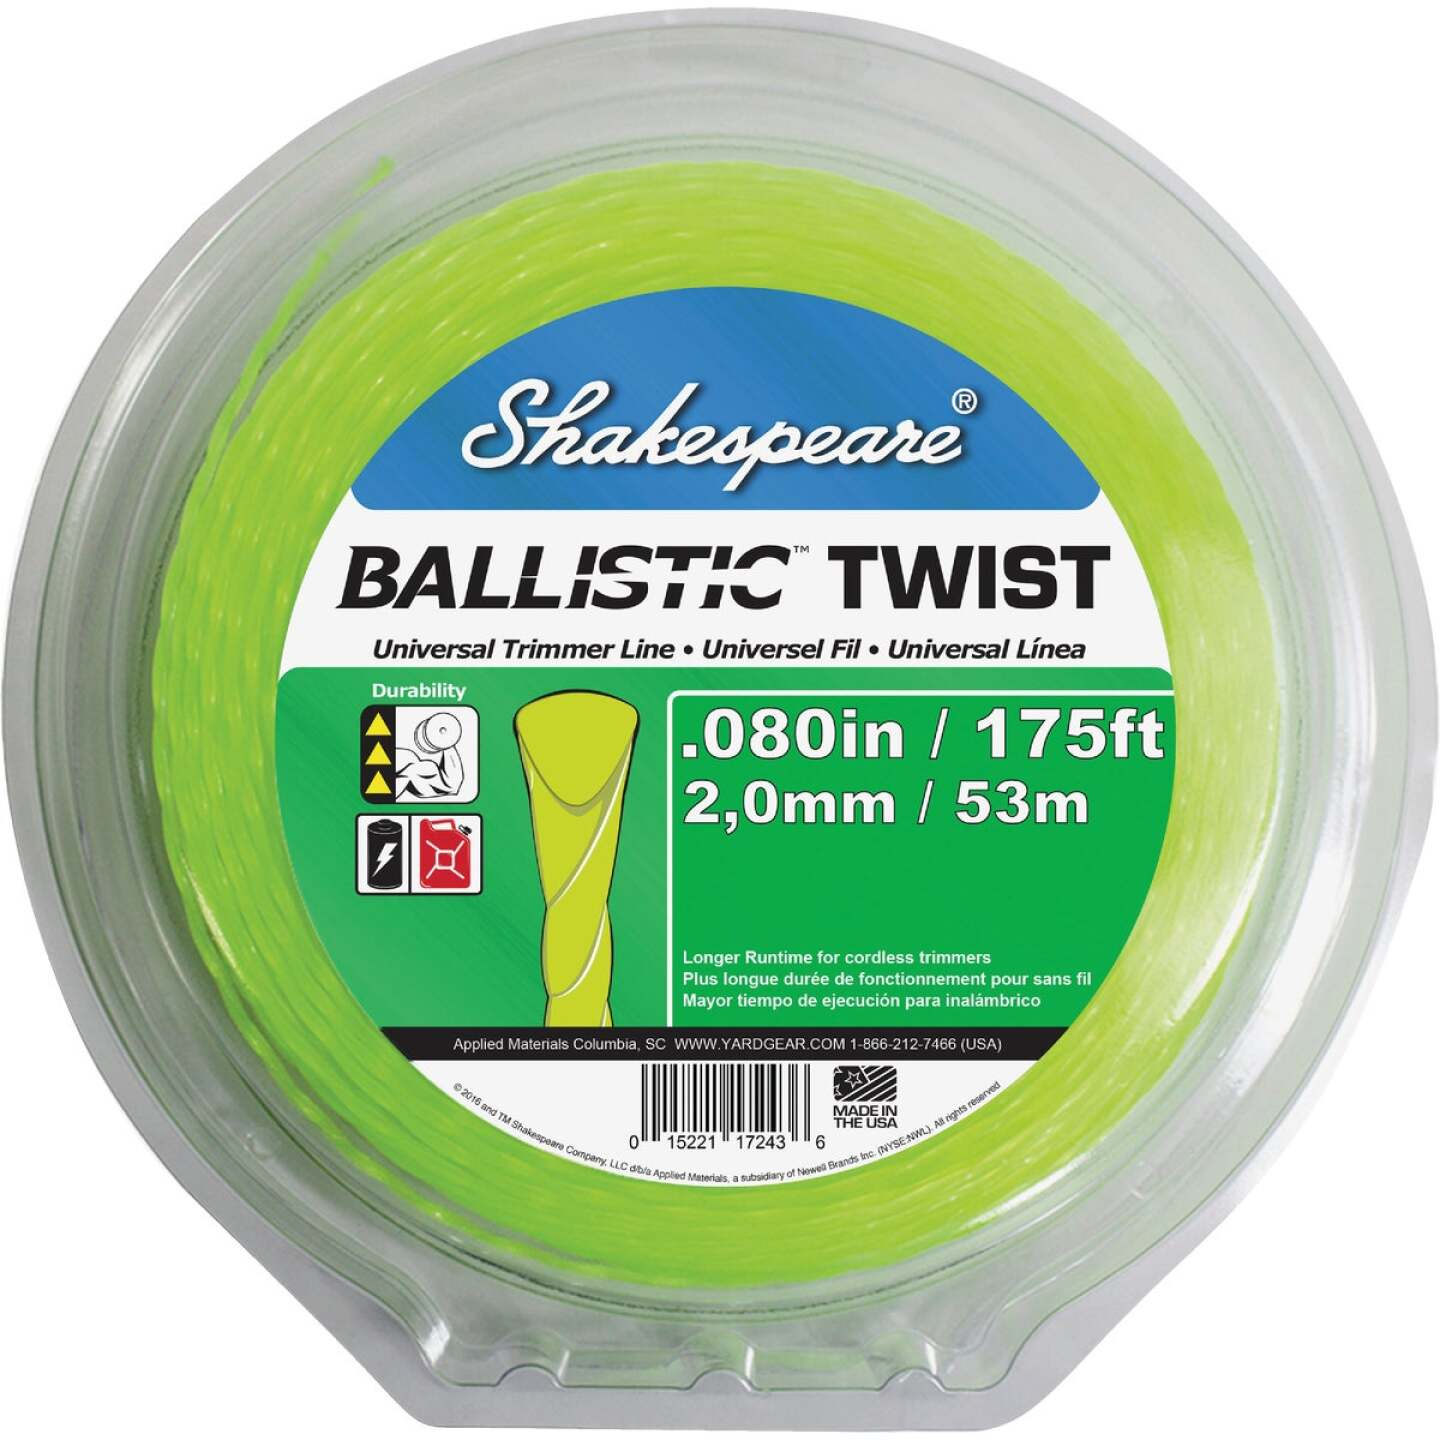 Shakespeare 0.80 In. x 175 Ft. Ballistic Twist Universal Trimmer Line Image 1